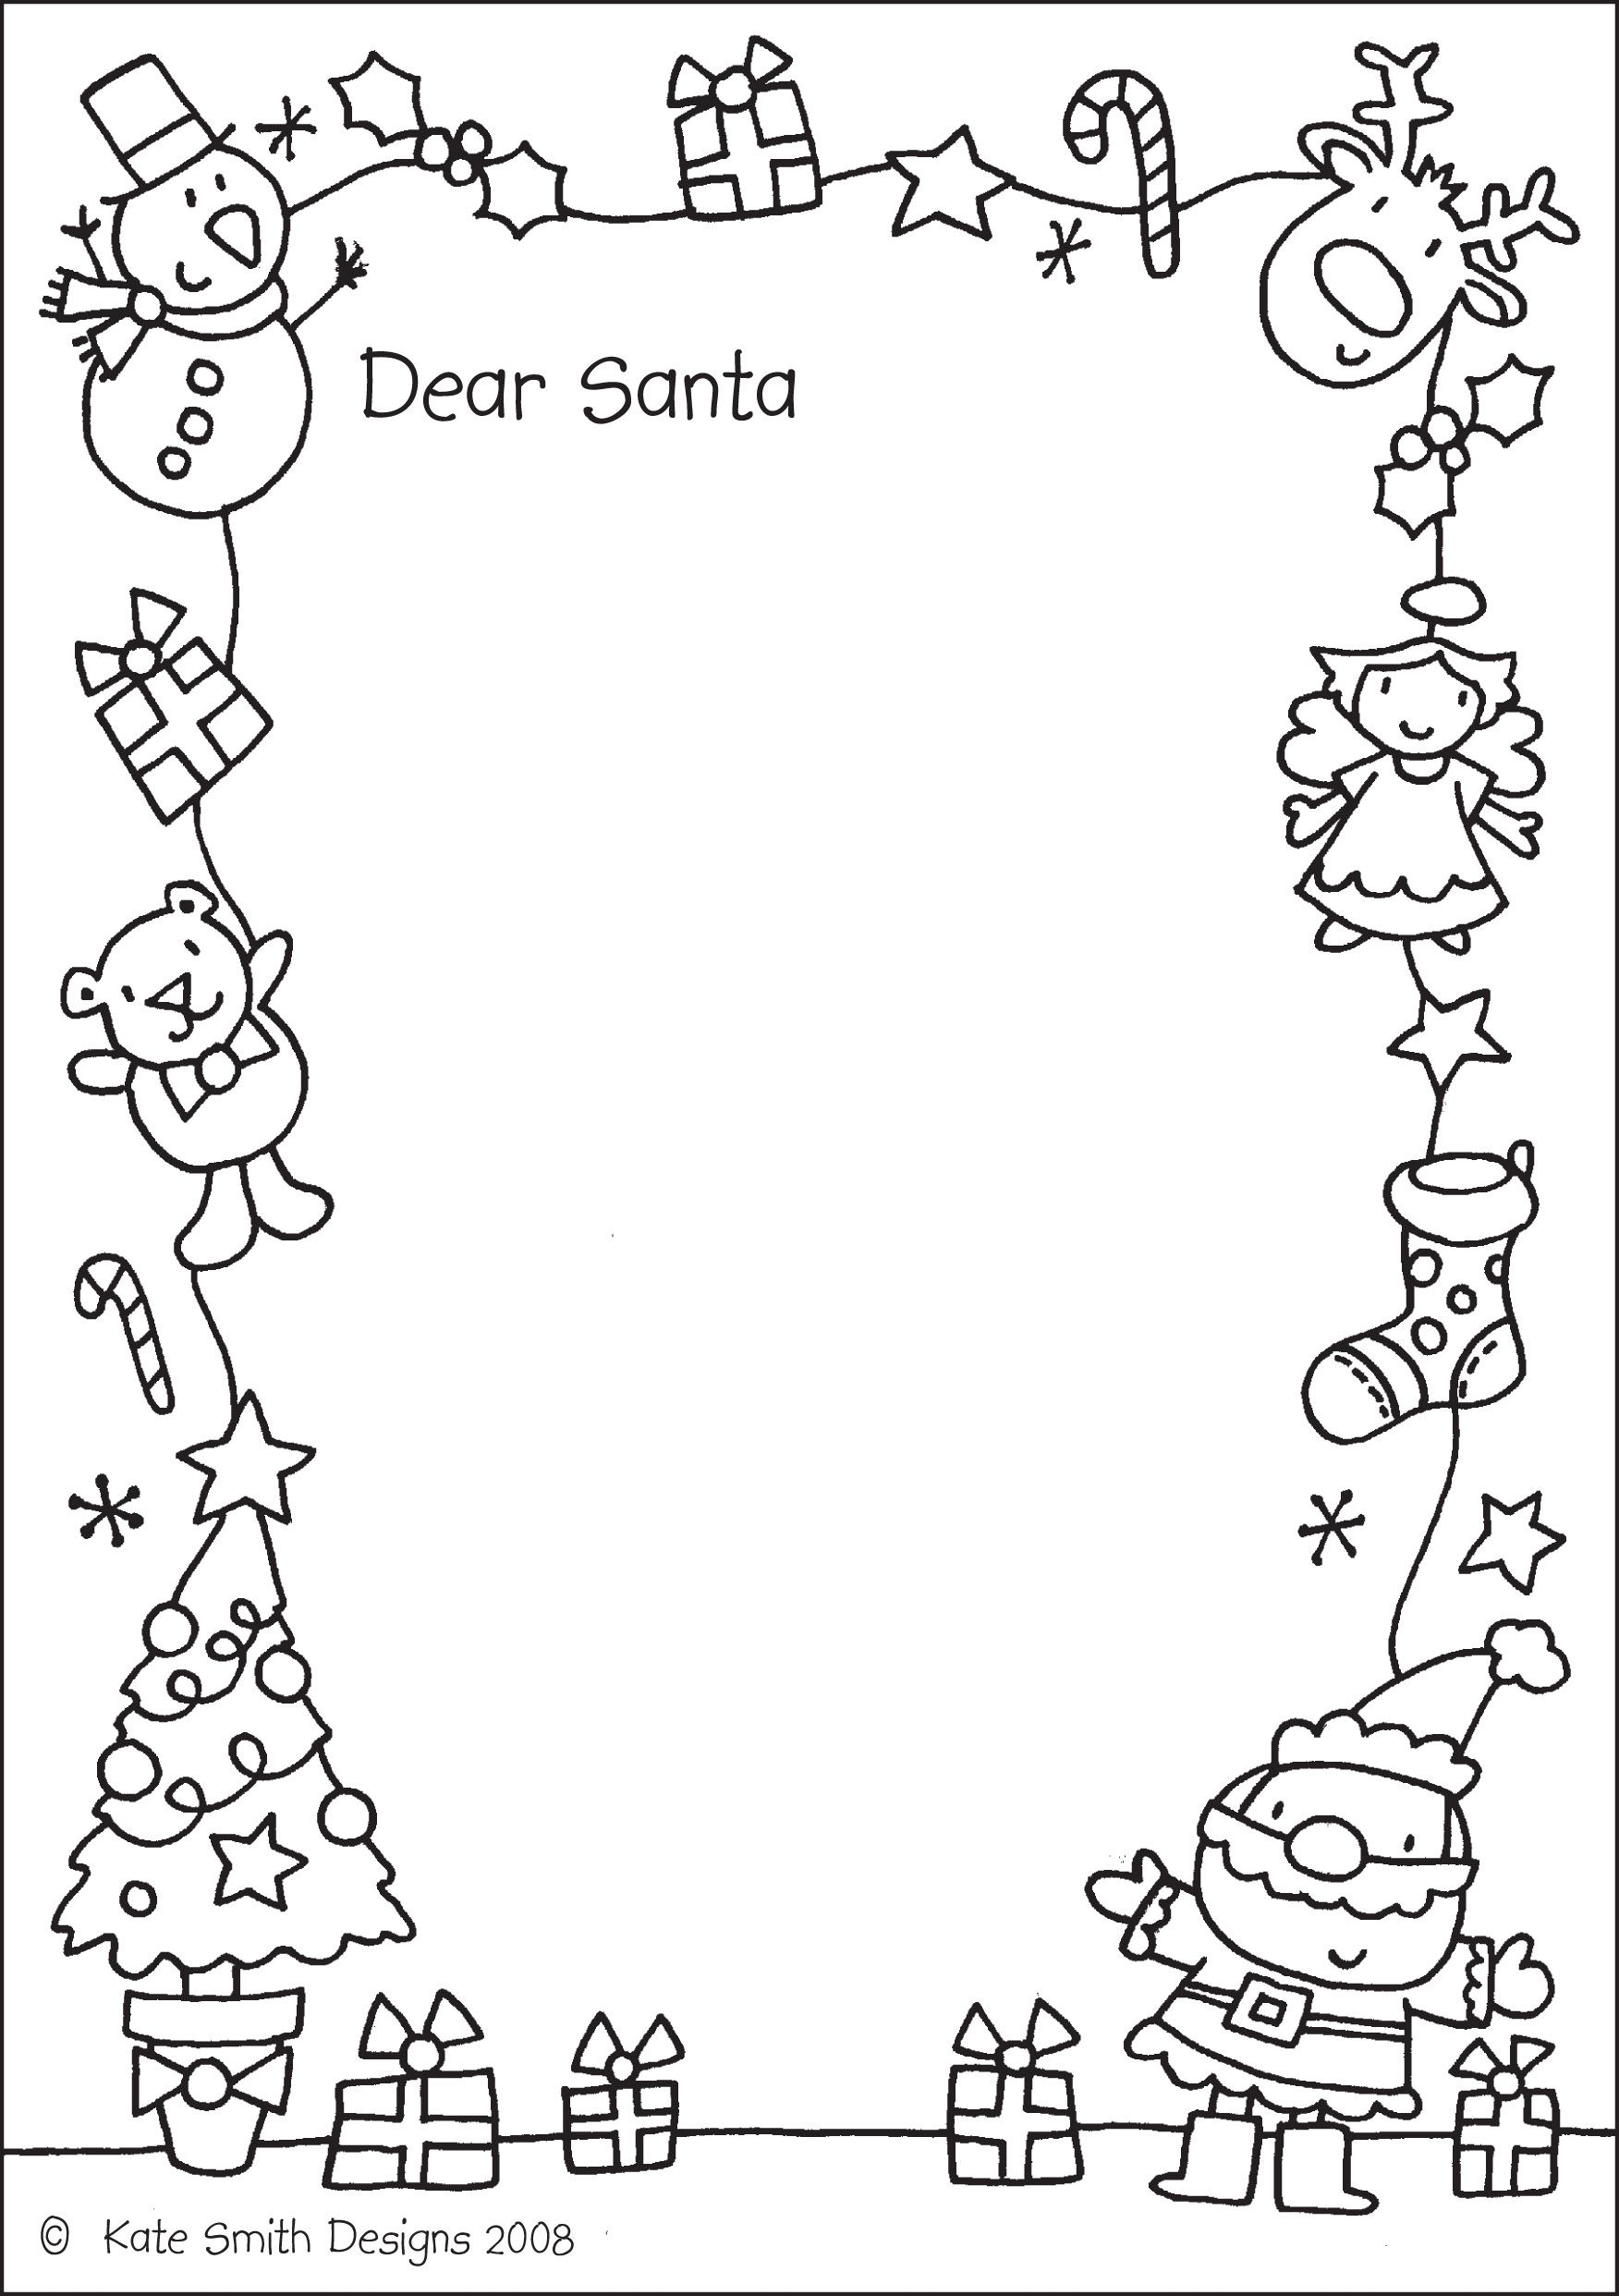 Free Printable Santa Letter Template That The Kiddos Can